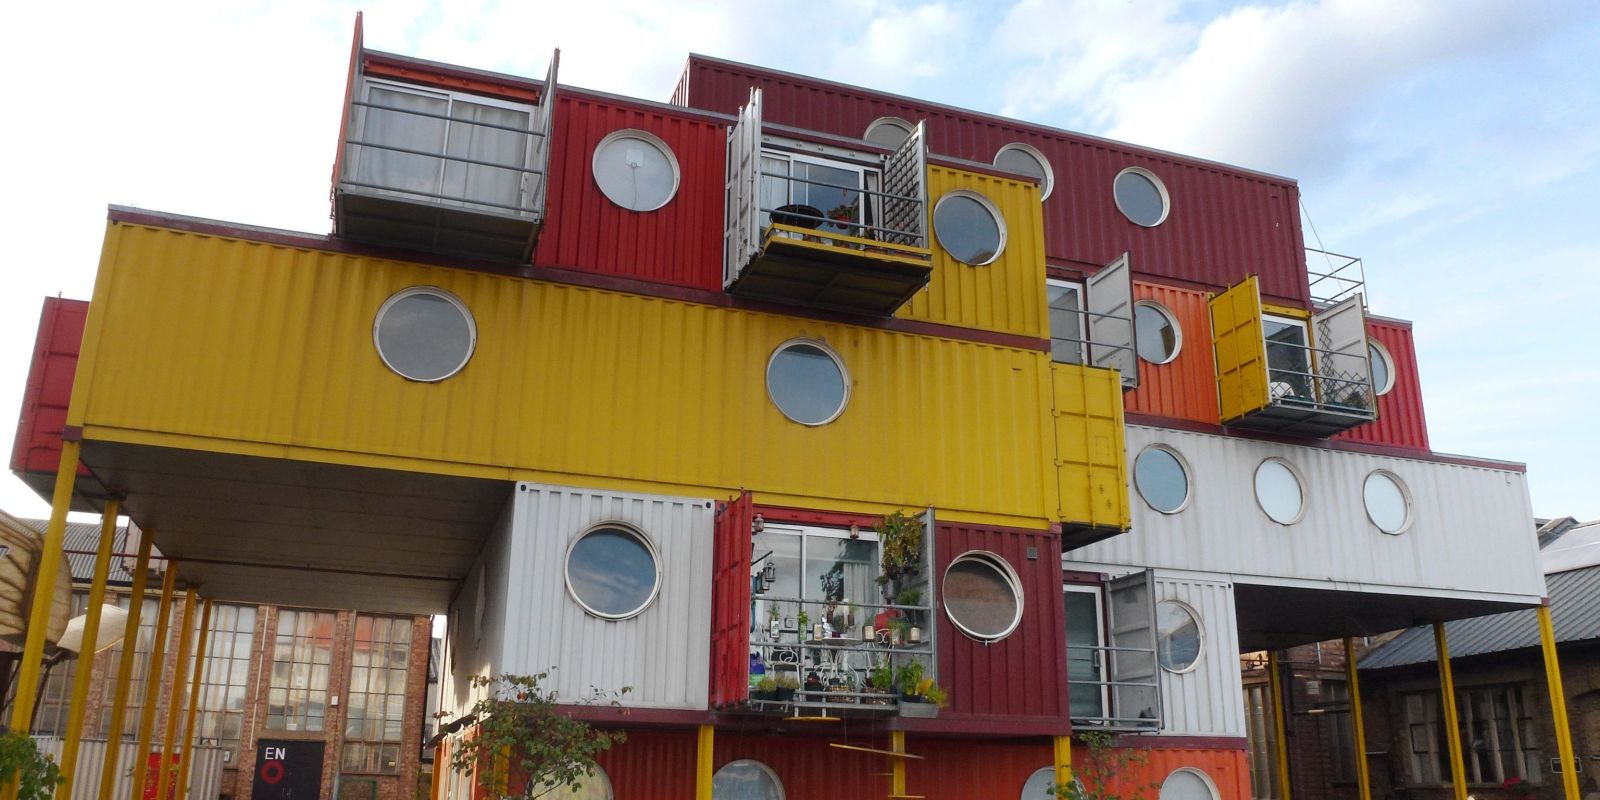 House Made From Shipping Container 45 shipping container homes & offices - cargo container houses